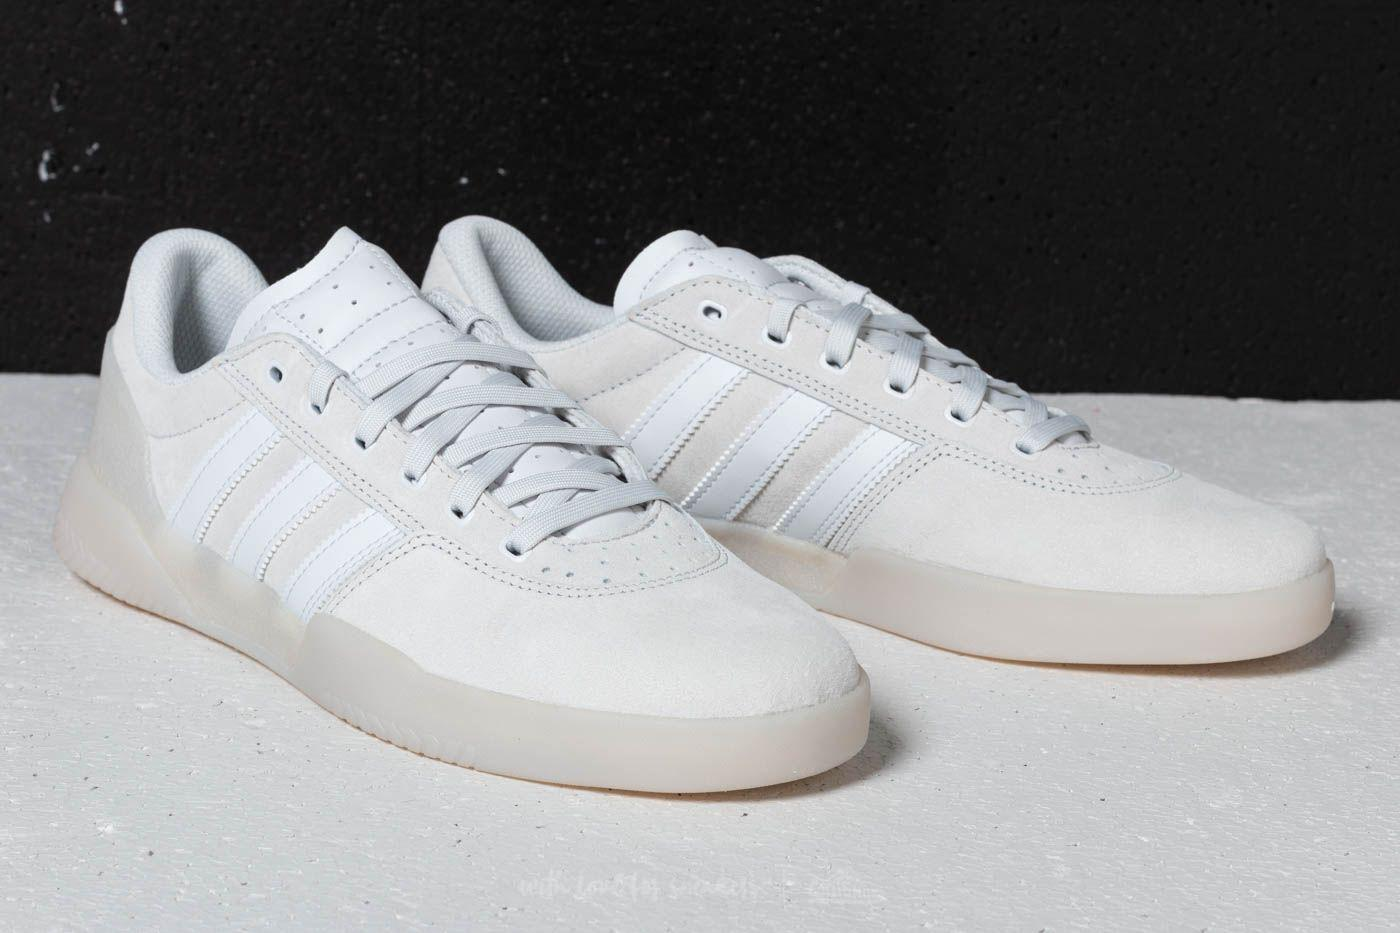 Lyst - adidas Originals Adidas City Cup Crystal White  Crystal White ... acca548c01